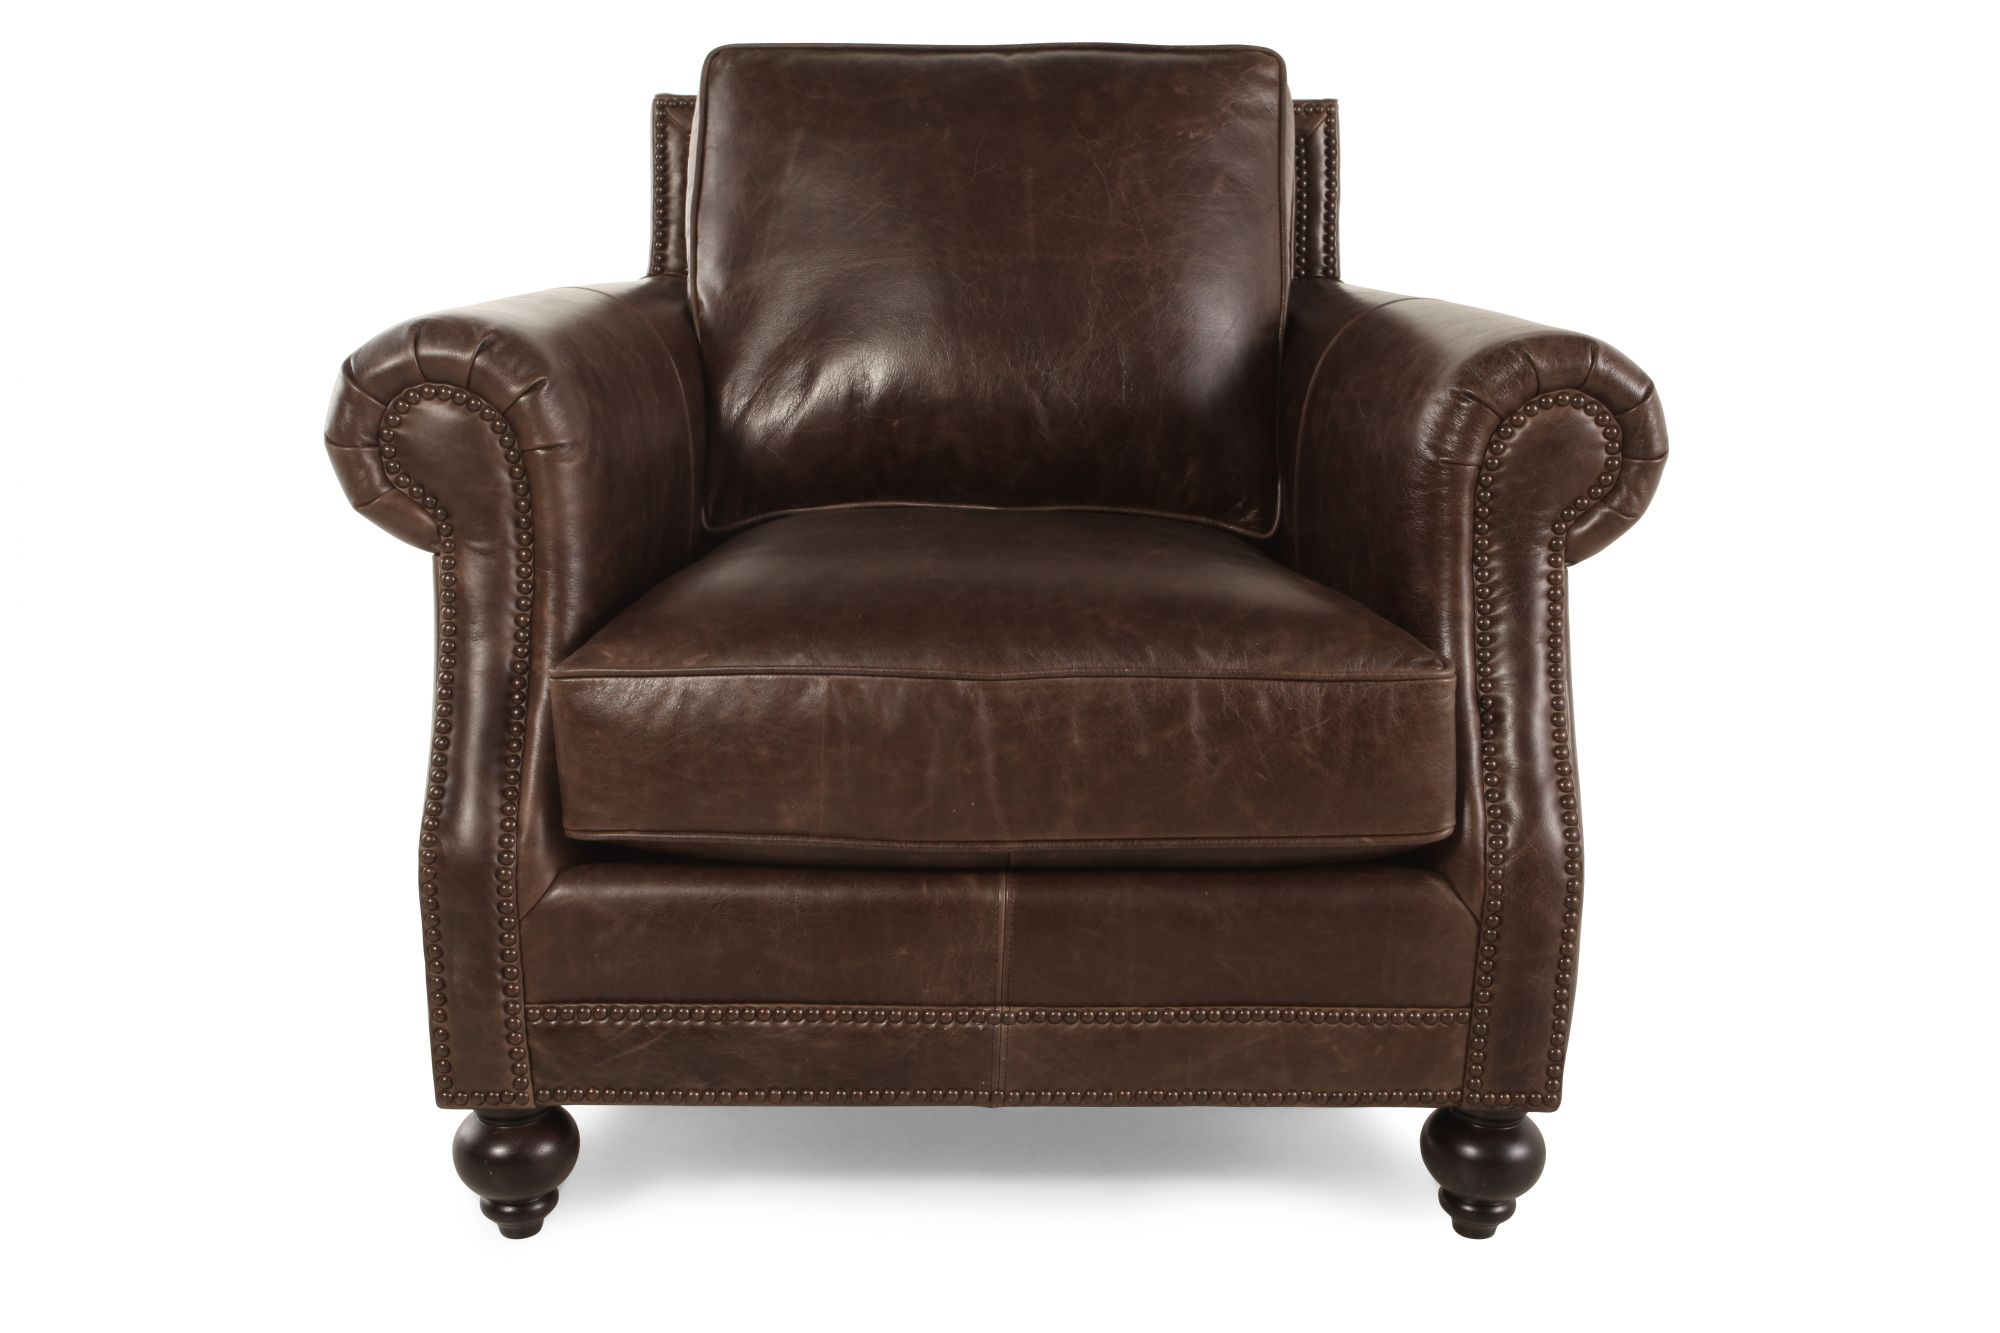 bernhardt brown leather club chair circle bungee target brae mathis brothers furniture